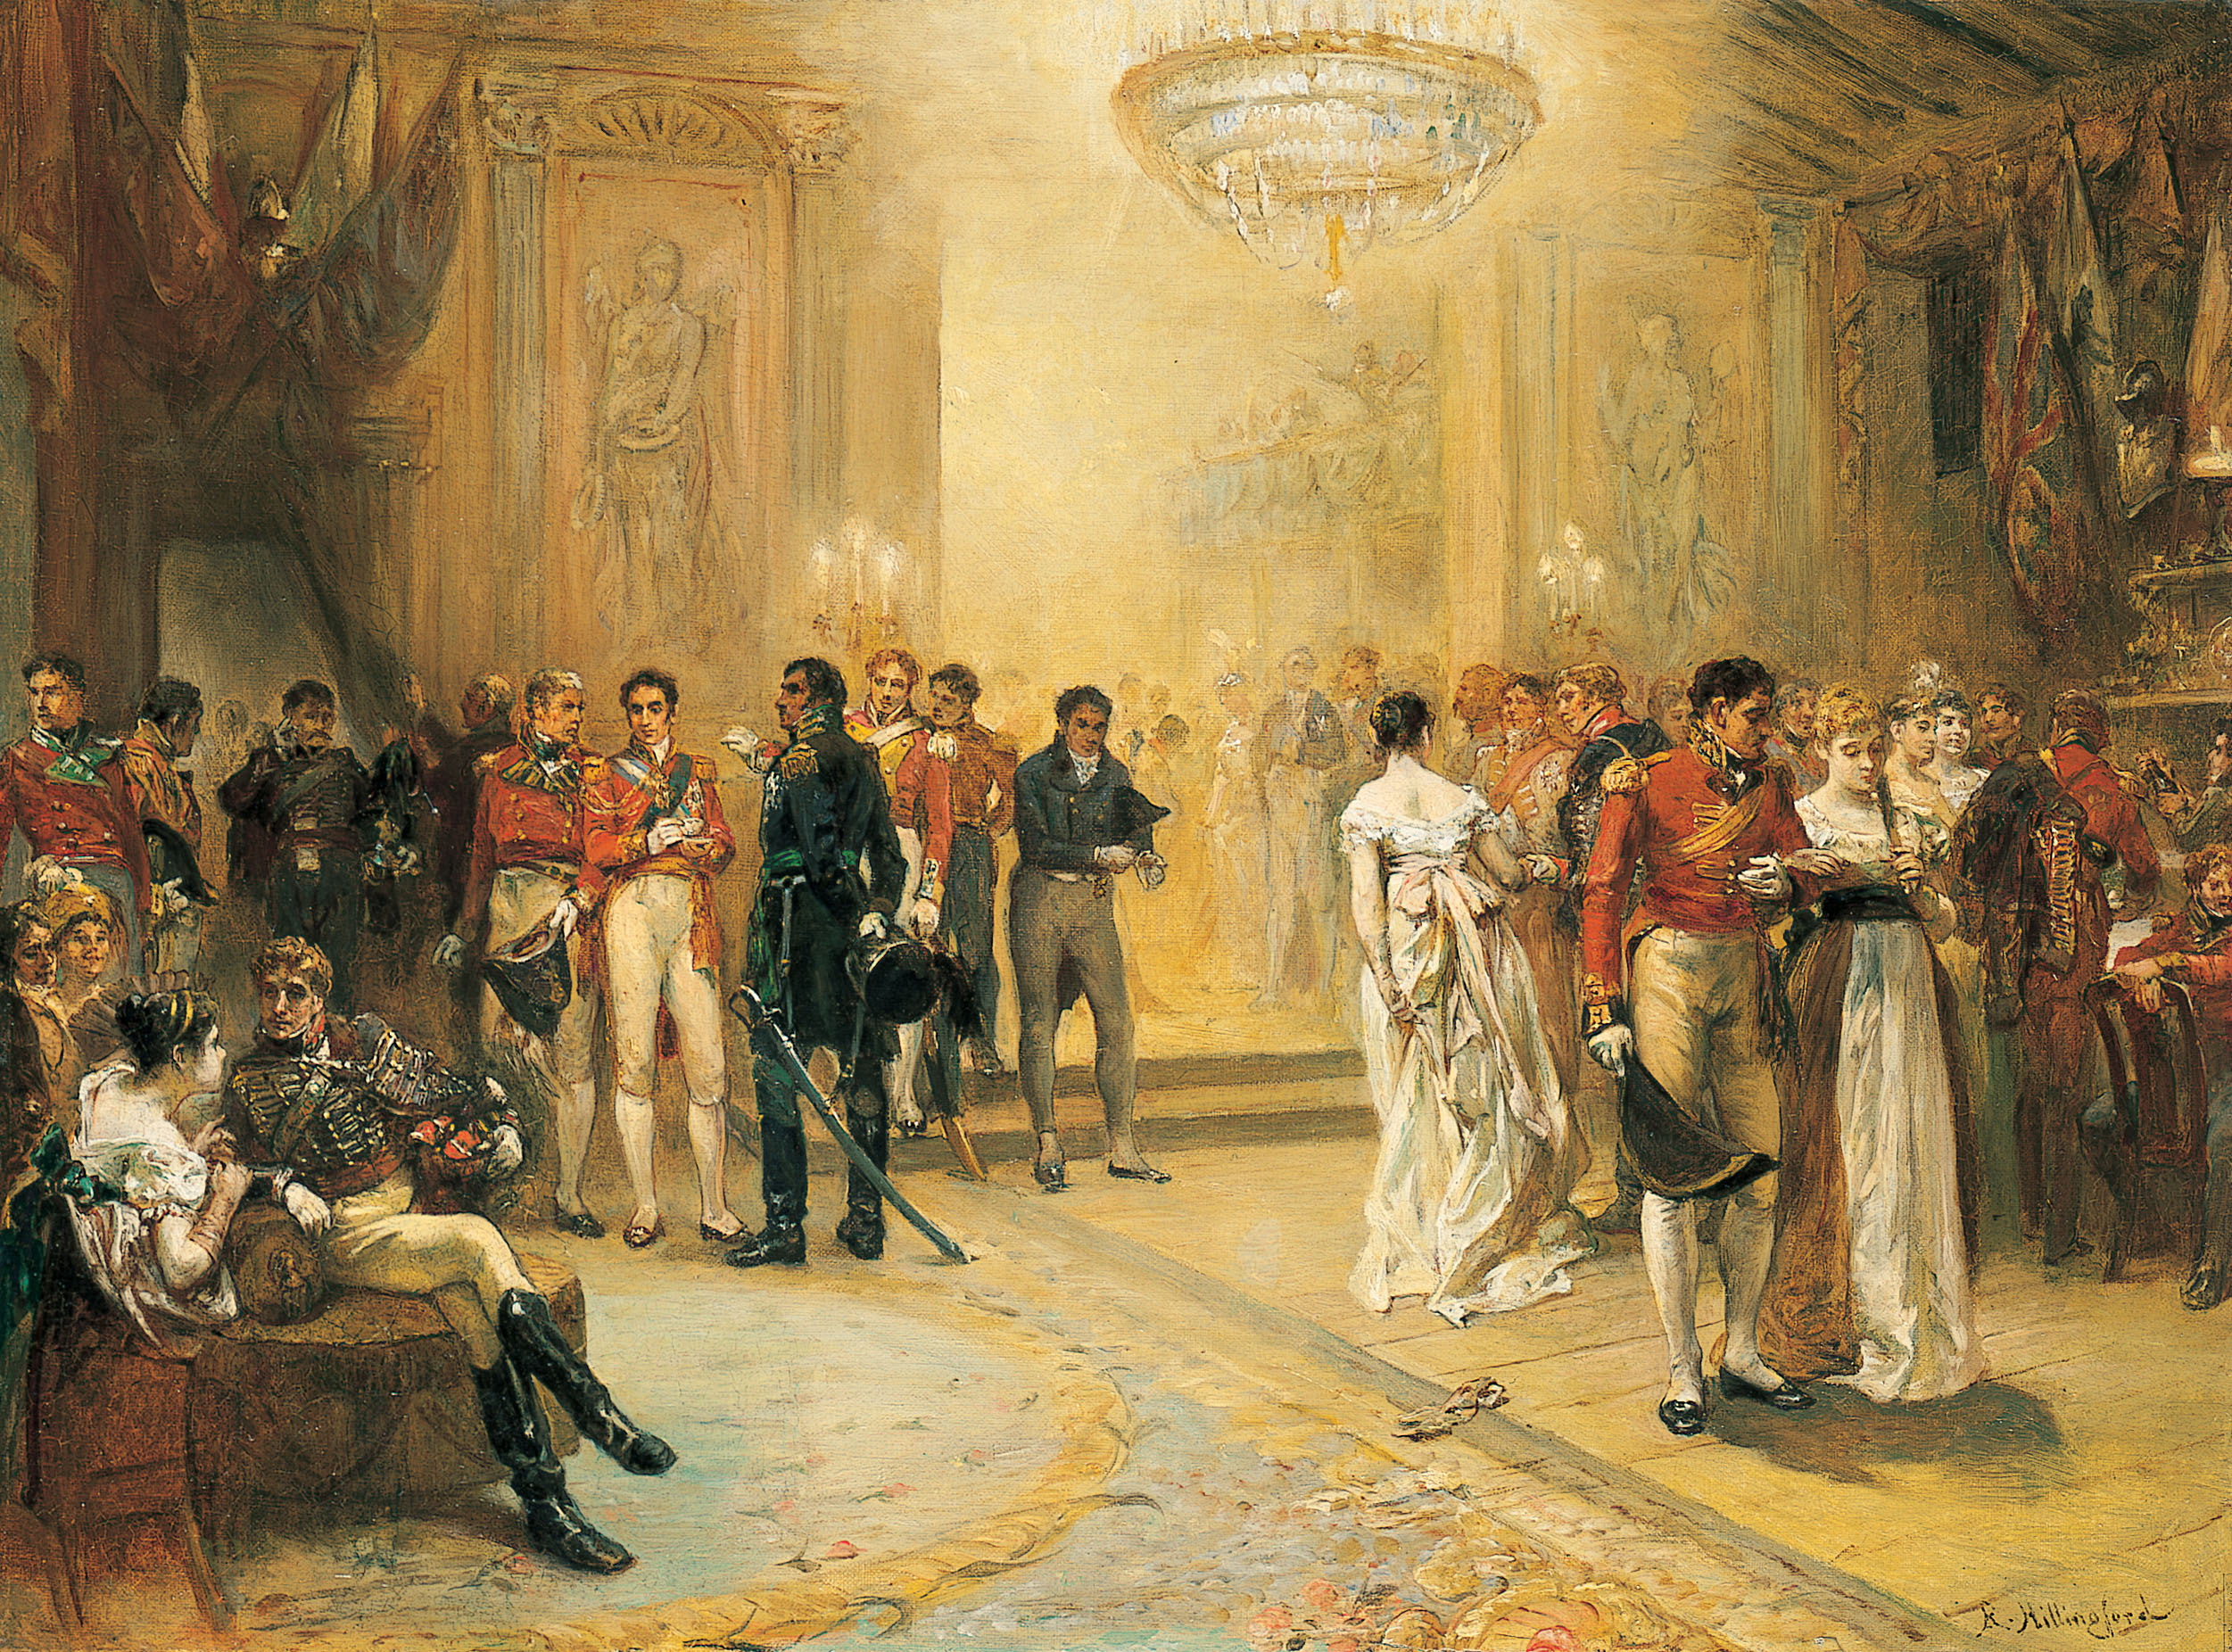 https://upload.wikimedia.org/wikipedia/commons/8/8b/The_Duchess_of_Richmond%27s_Ball_by_Robert_Alexander_Hillingford.jpg